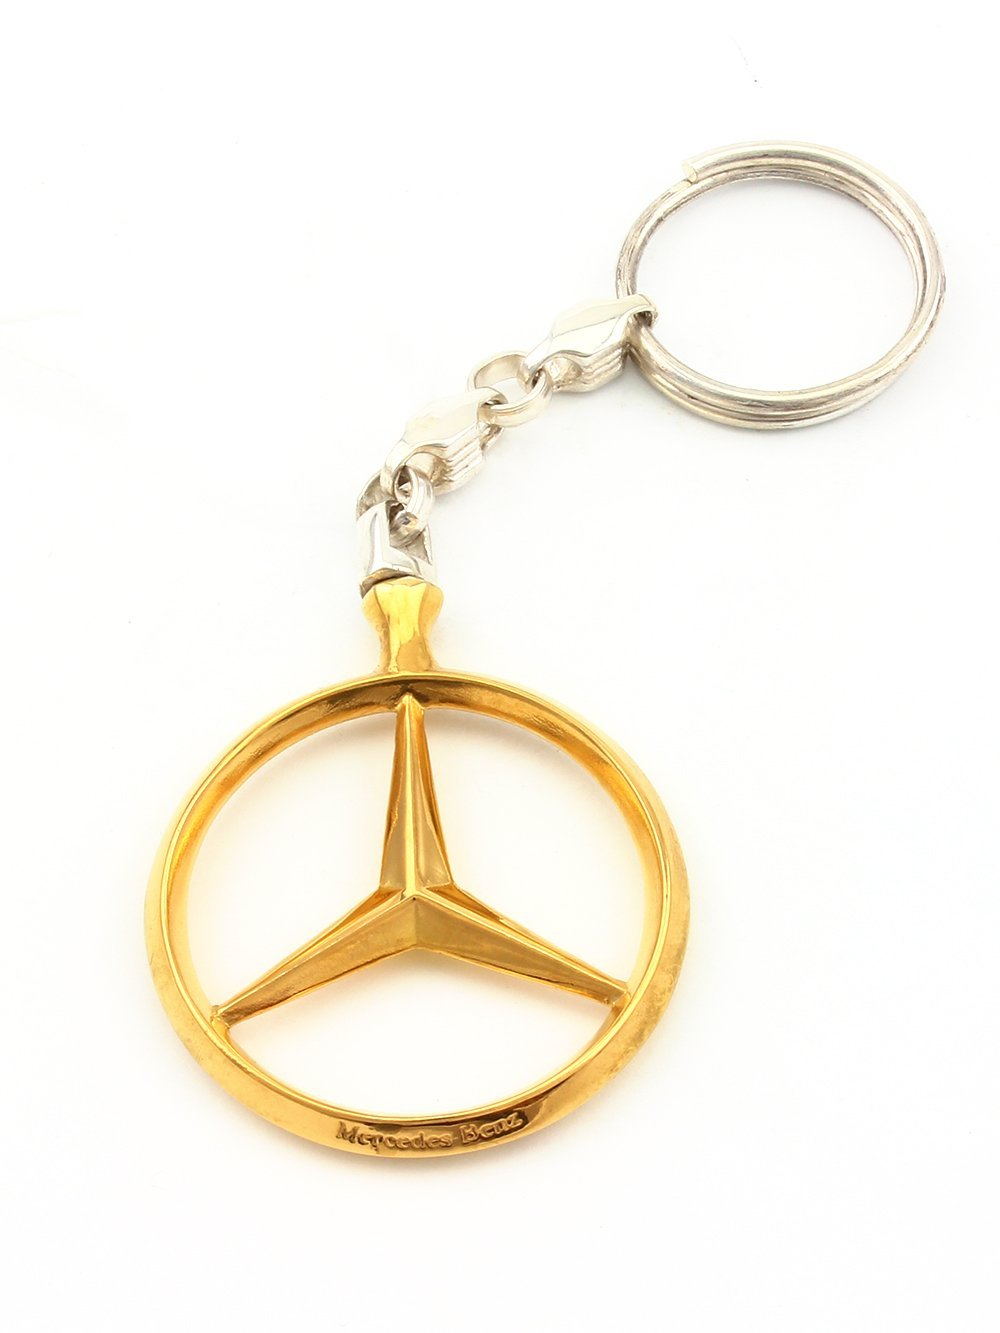 Silver Keychain For Mercedes - Unique Key ring - Solid Sterling Silver - Gift for Men